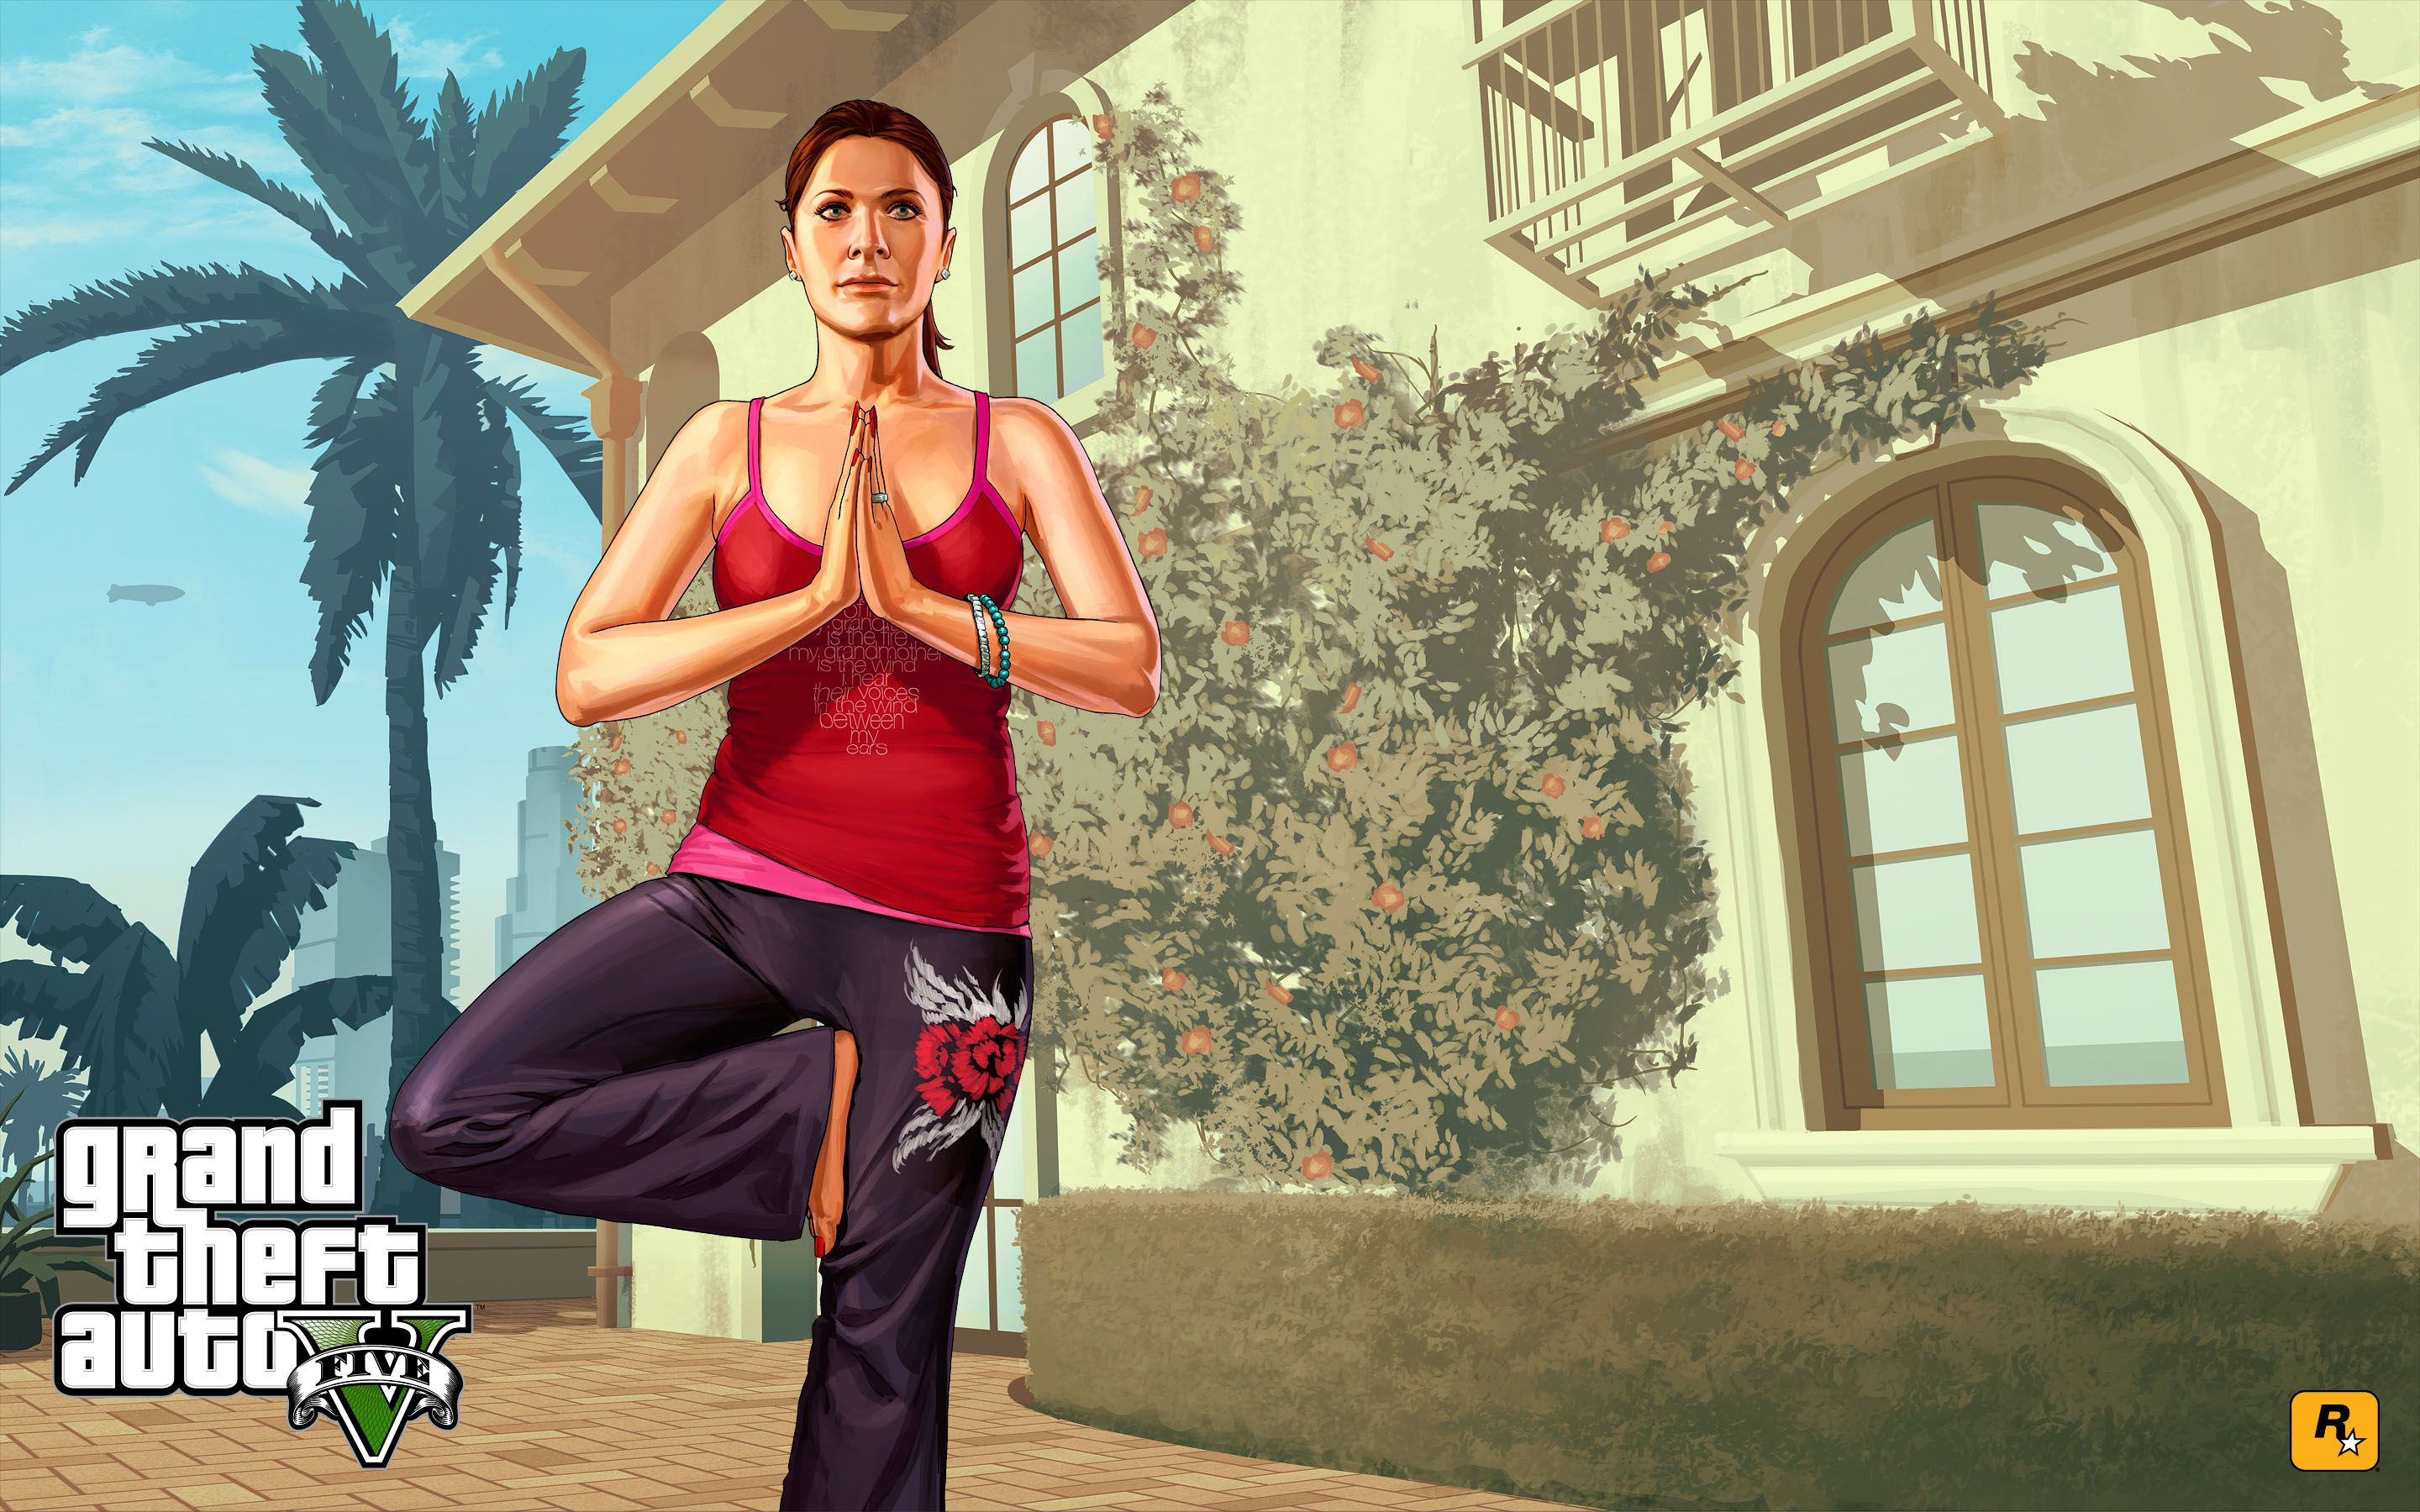 gta 5 - yoga with amanda 2880x1800 wallpaper | best games of all